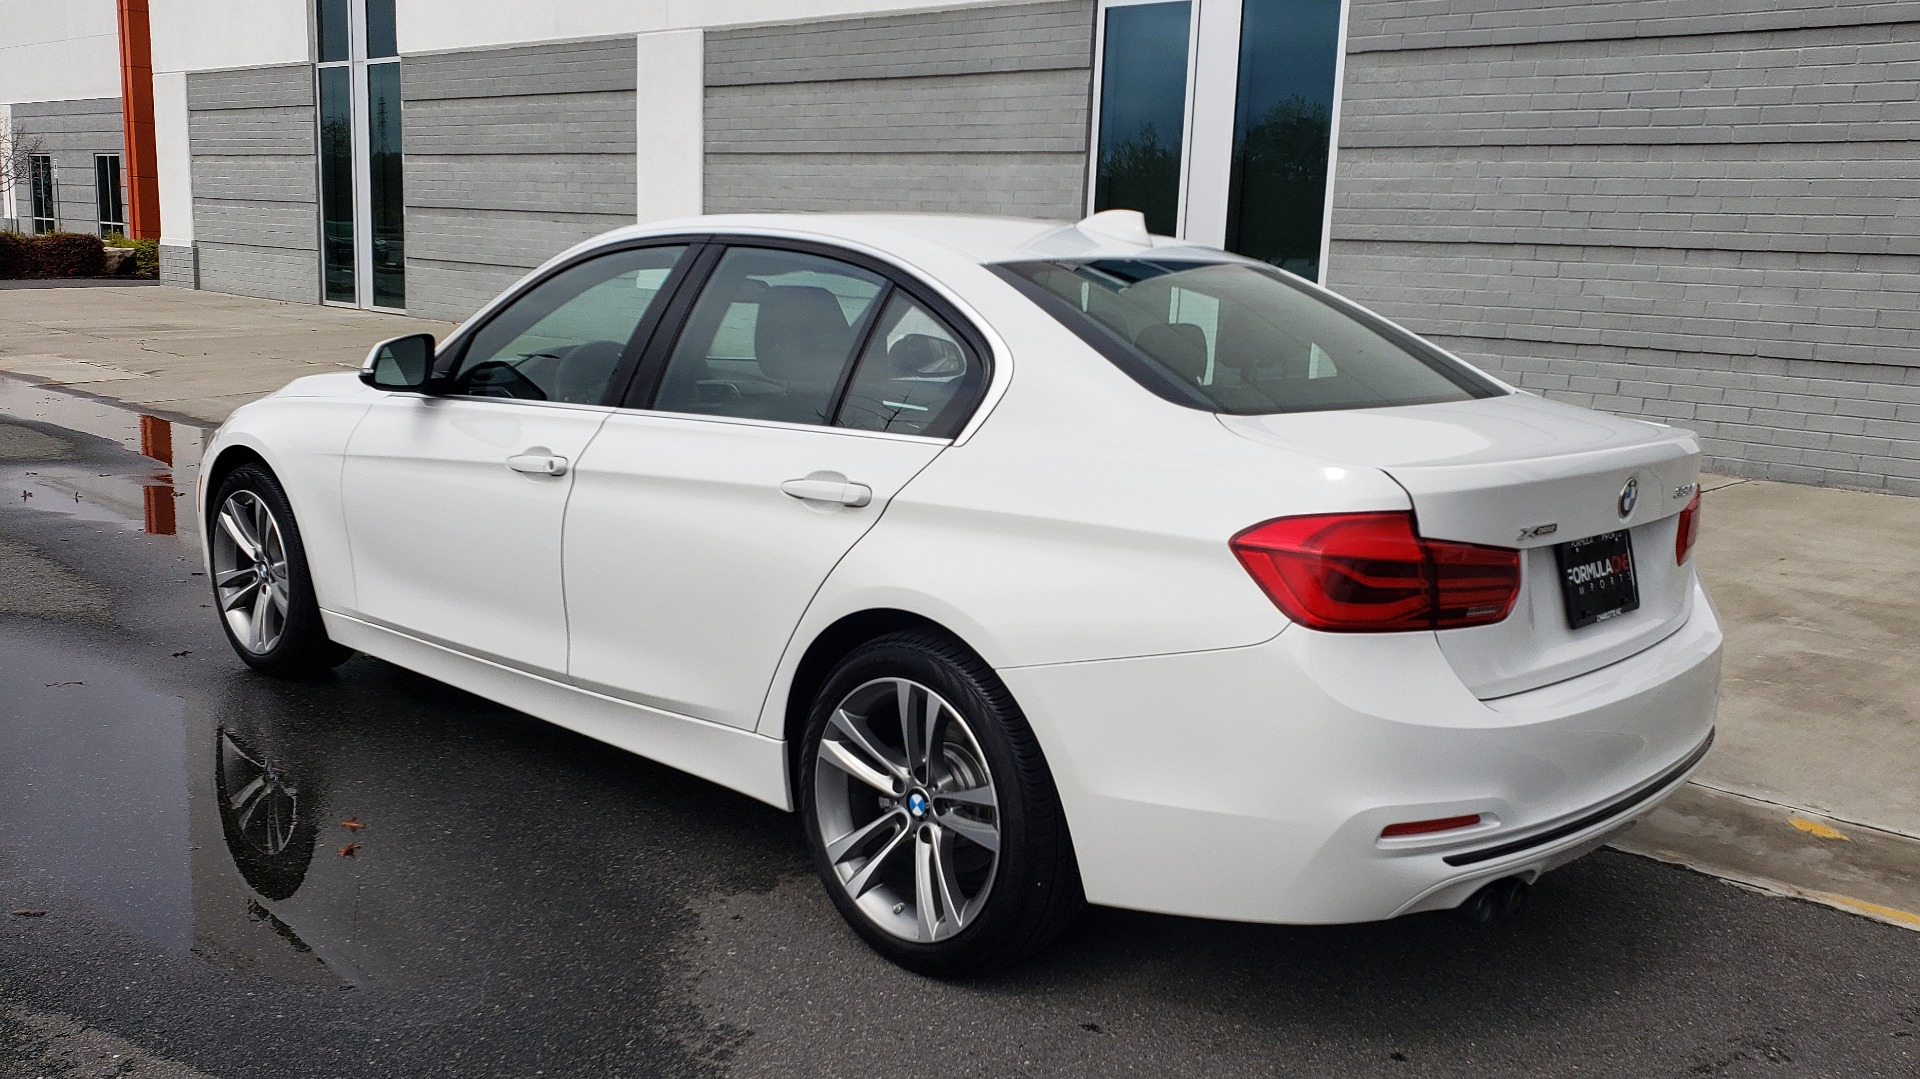 Used 2018 BMW 3 SERIES 330I XDRIVE / CONV PKG / SUNROOF / HTD STS / REARVIEW for sale $24,795 at Formula Imports in Charlotte NC 28227 9